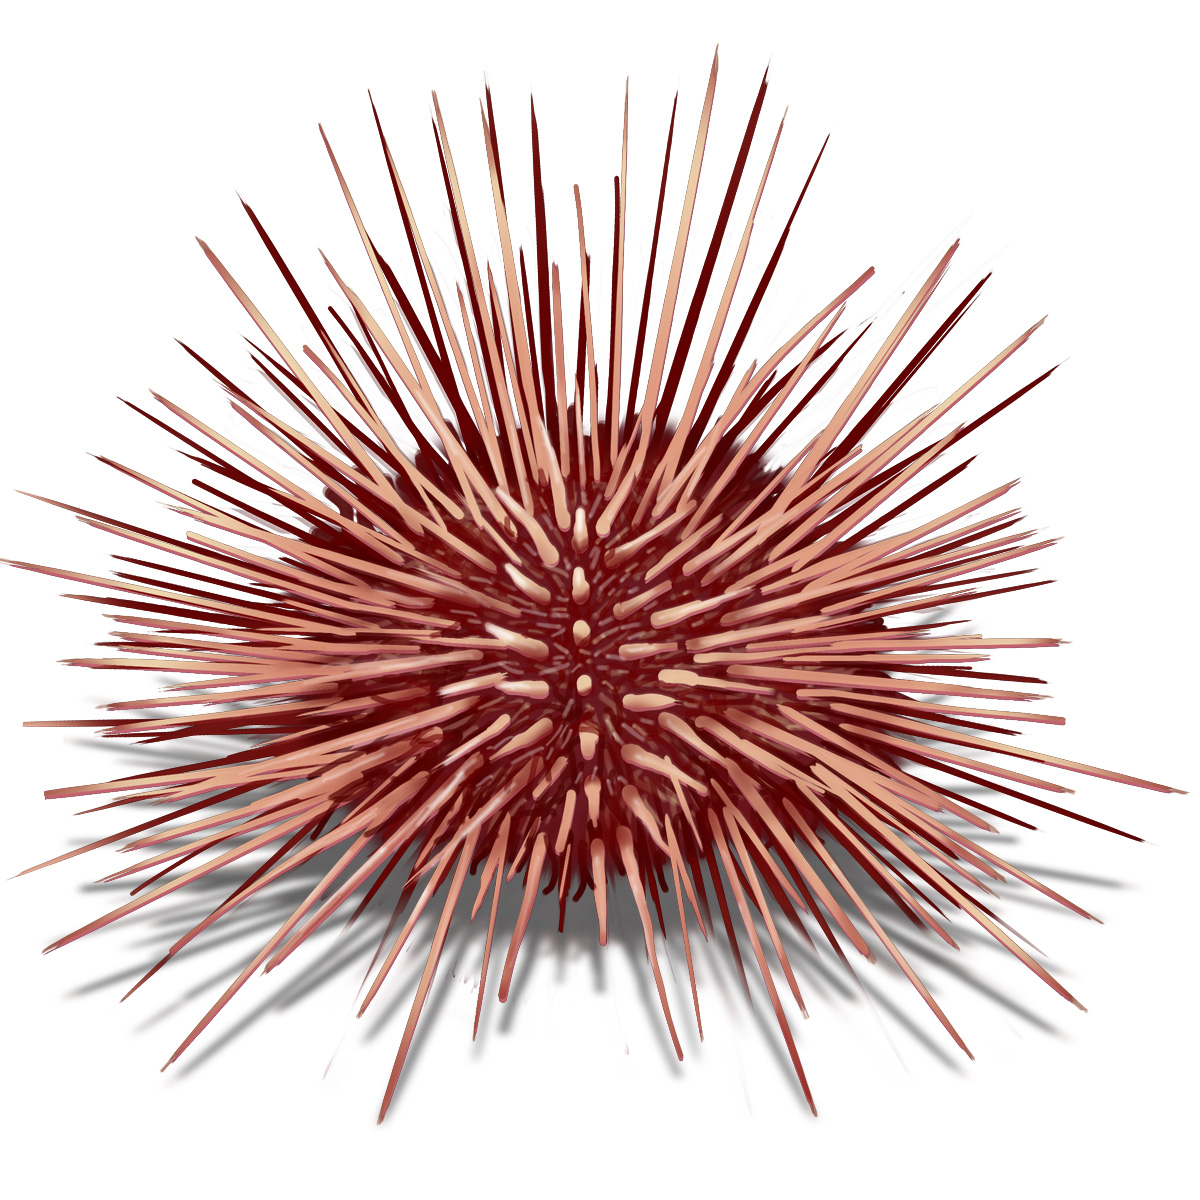 Sea Urchin Drawing at GetDrawings.com | Free for personal use Sea ...